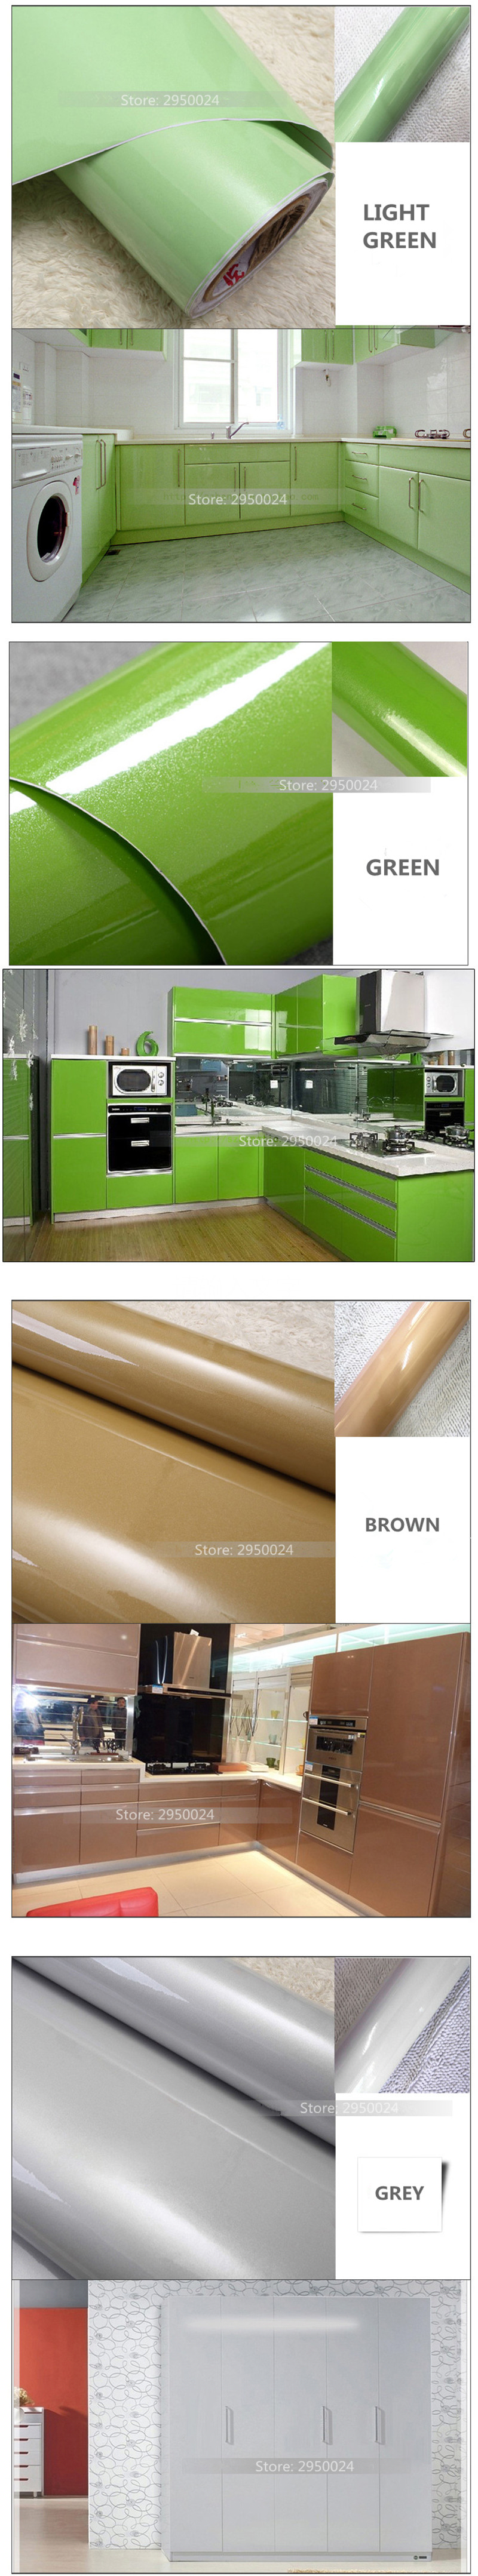 PVC Self adhesive Wallpapers Rolls Modern Kitchen Wall Papers